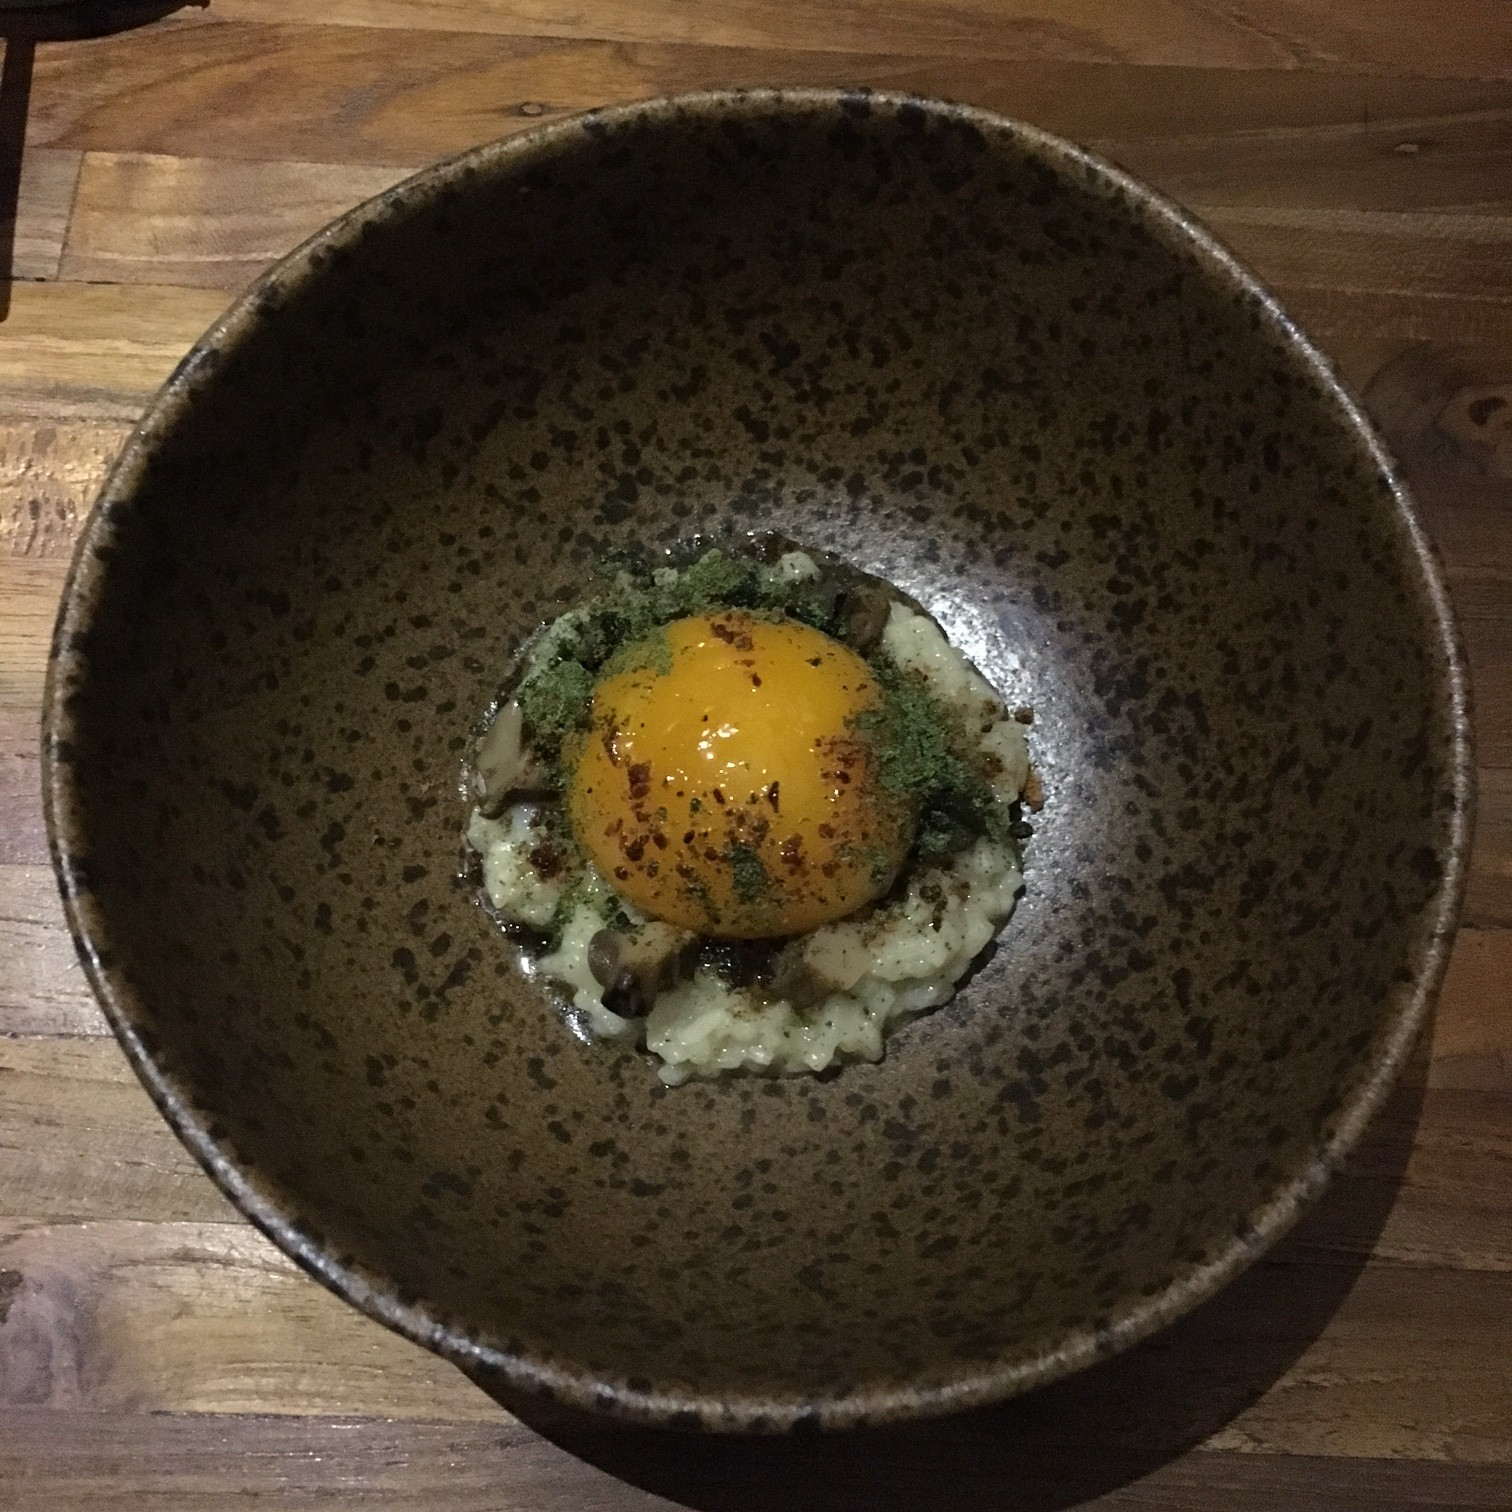 This one is called 'Into The Sawah': Rice porridge from hi-grade rice (from Jatiluwih, Central Bali), snails pressure-cooked in garlic stock, 64-degrees Celsius duck egg yolk, catfish abon, dehydrated fern tips and wild flowers.